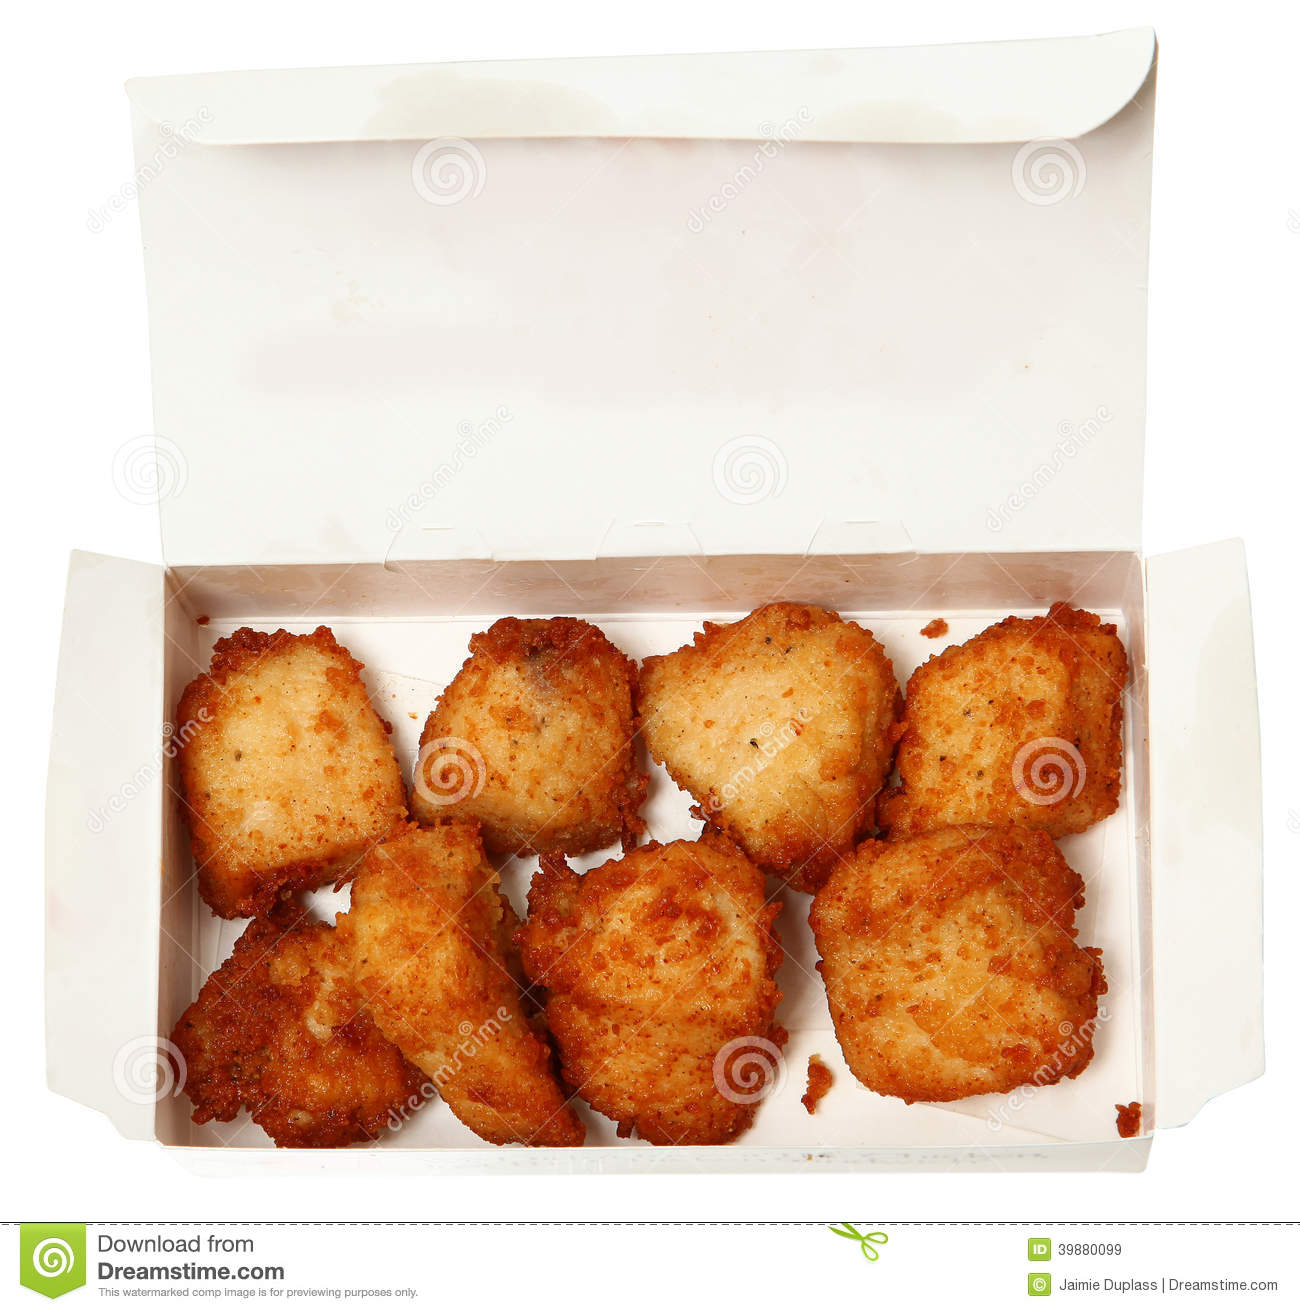 Fast Food In The Box Royalty-Free Stock Photography